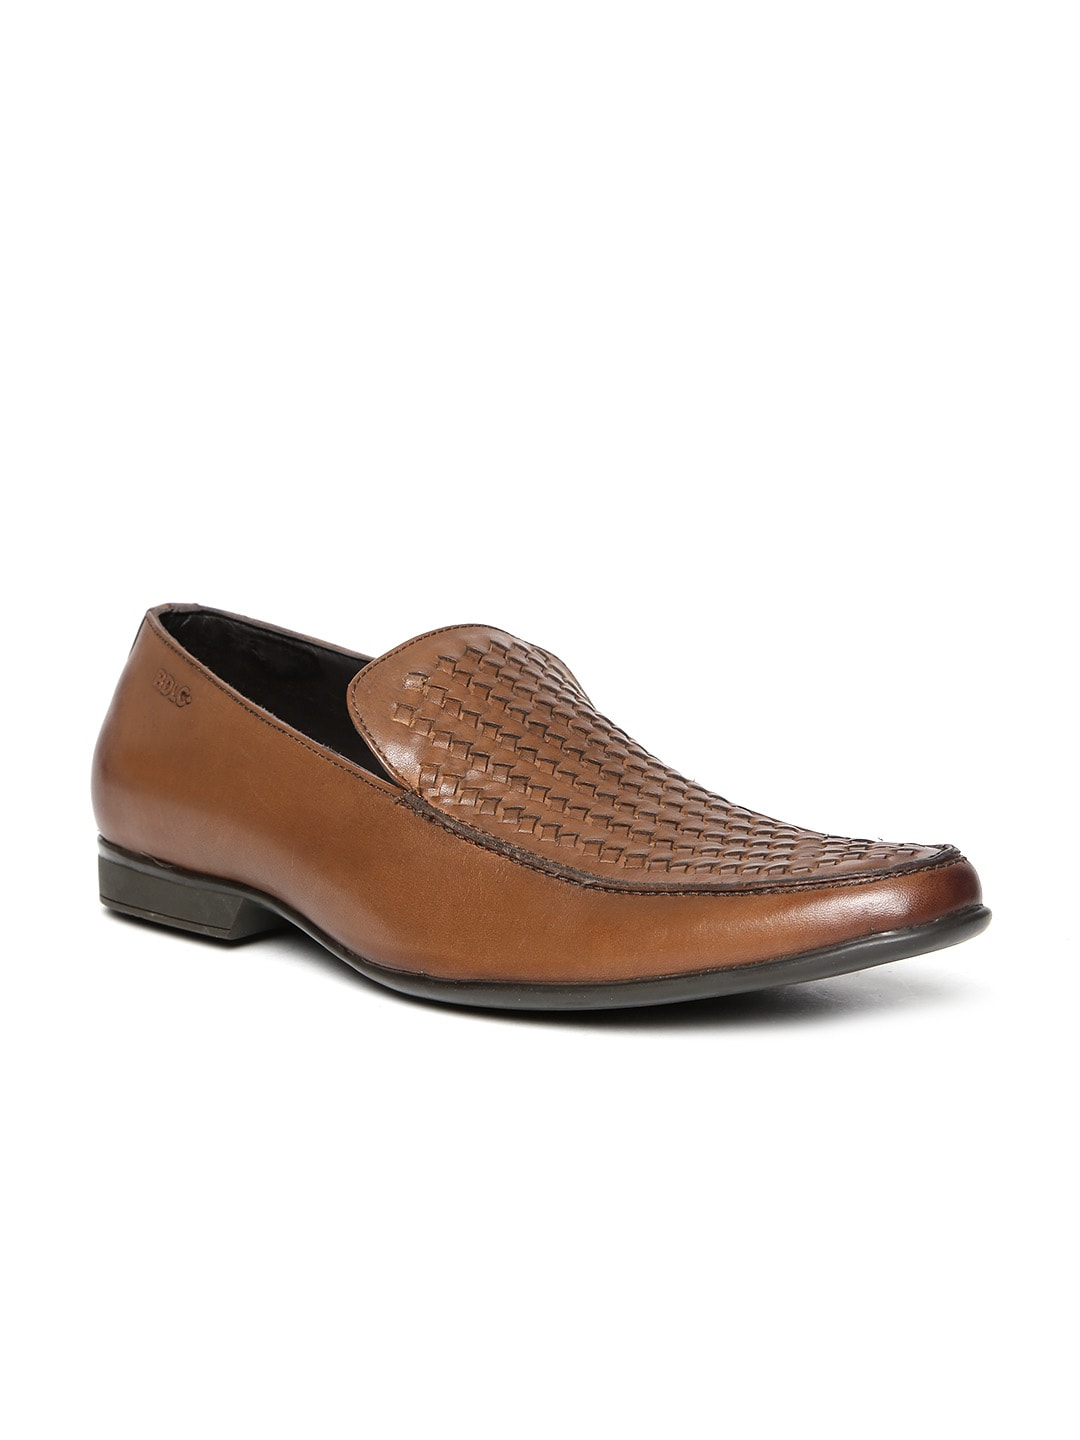 53f8ac5253e5d2 Woven Formal Shoes - Buy Woven Formal Shoes online in India